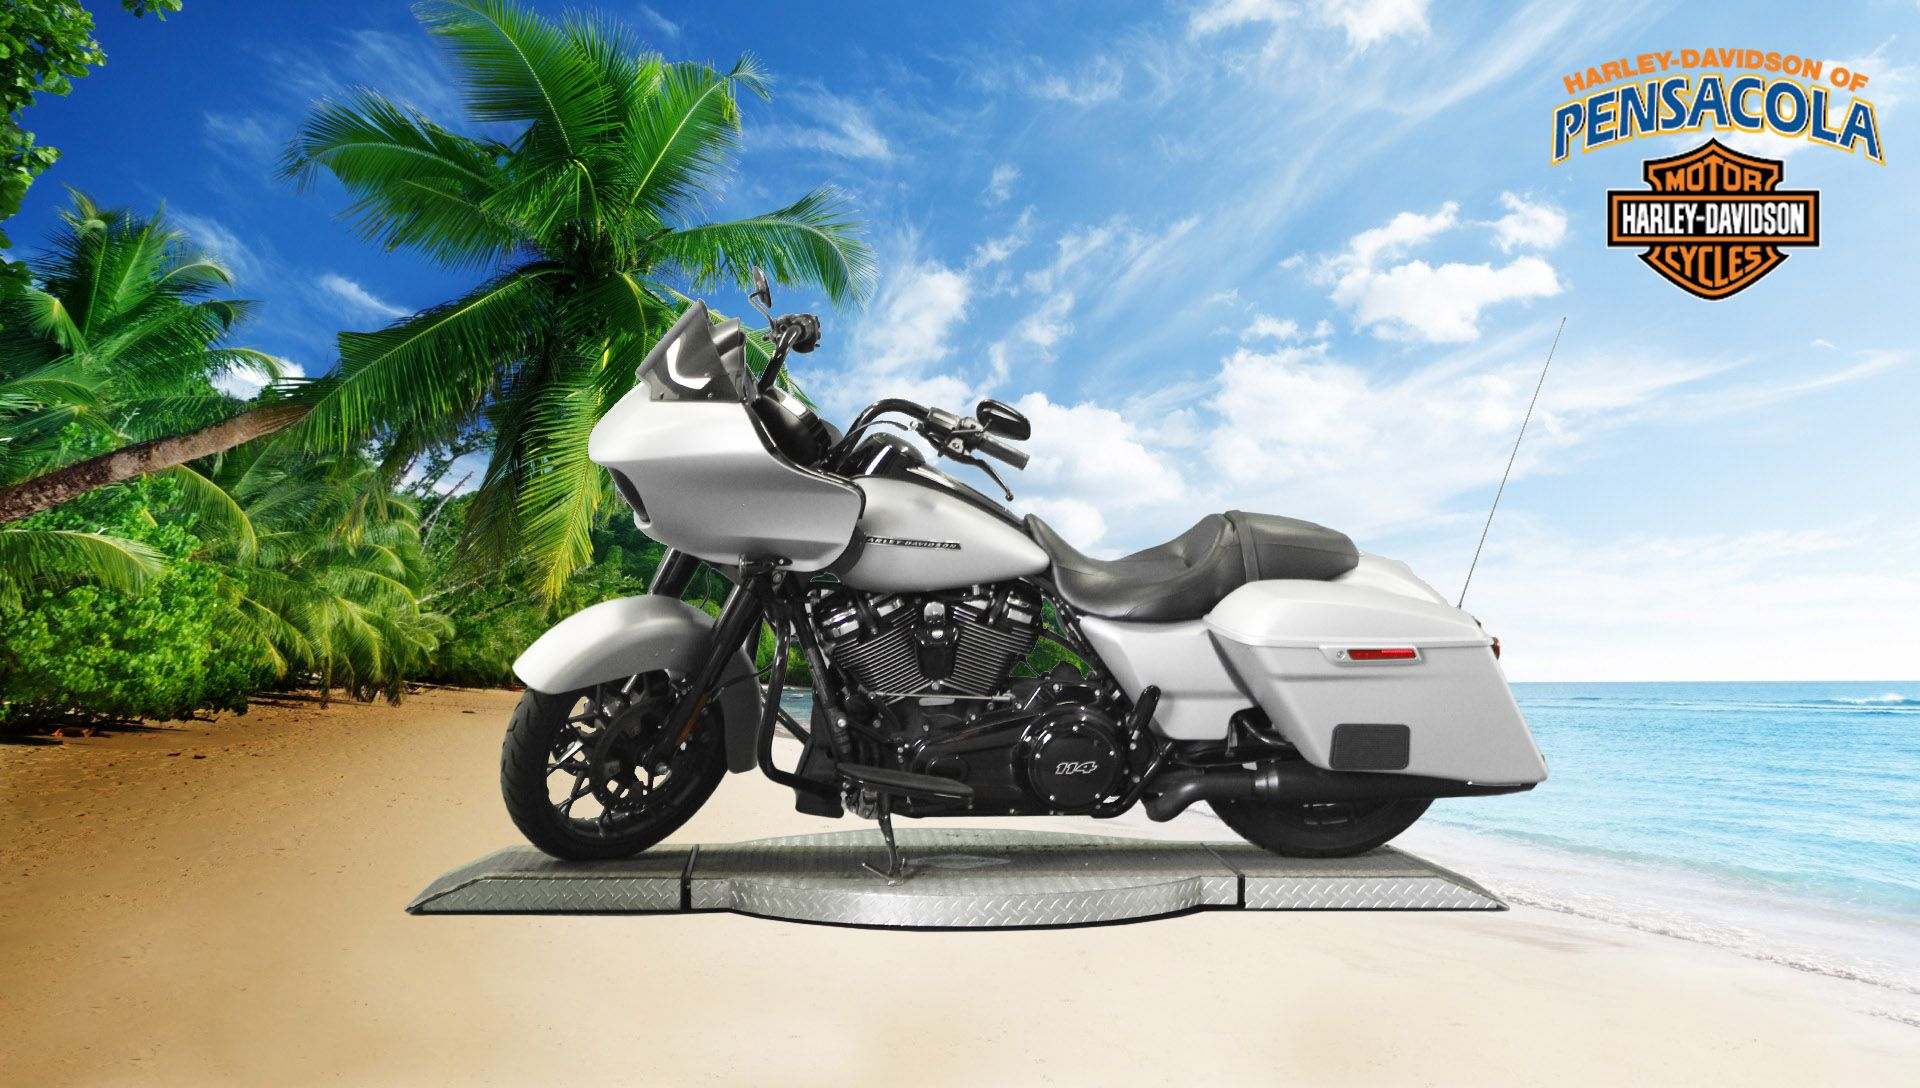 Pre-Owned 2020 Harley-Davidson Road Glide Special FLTRXS